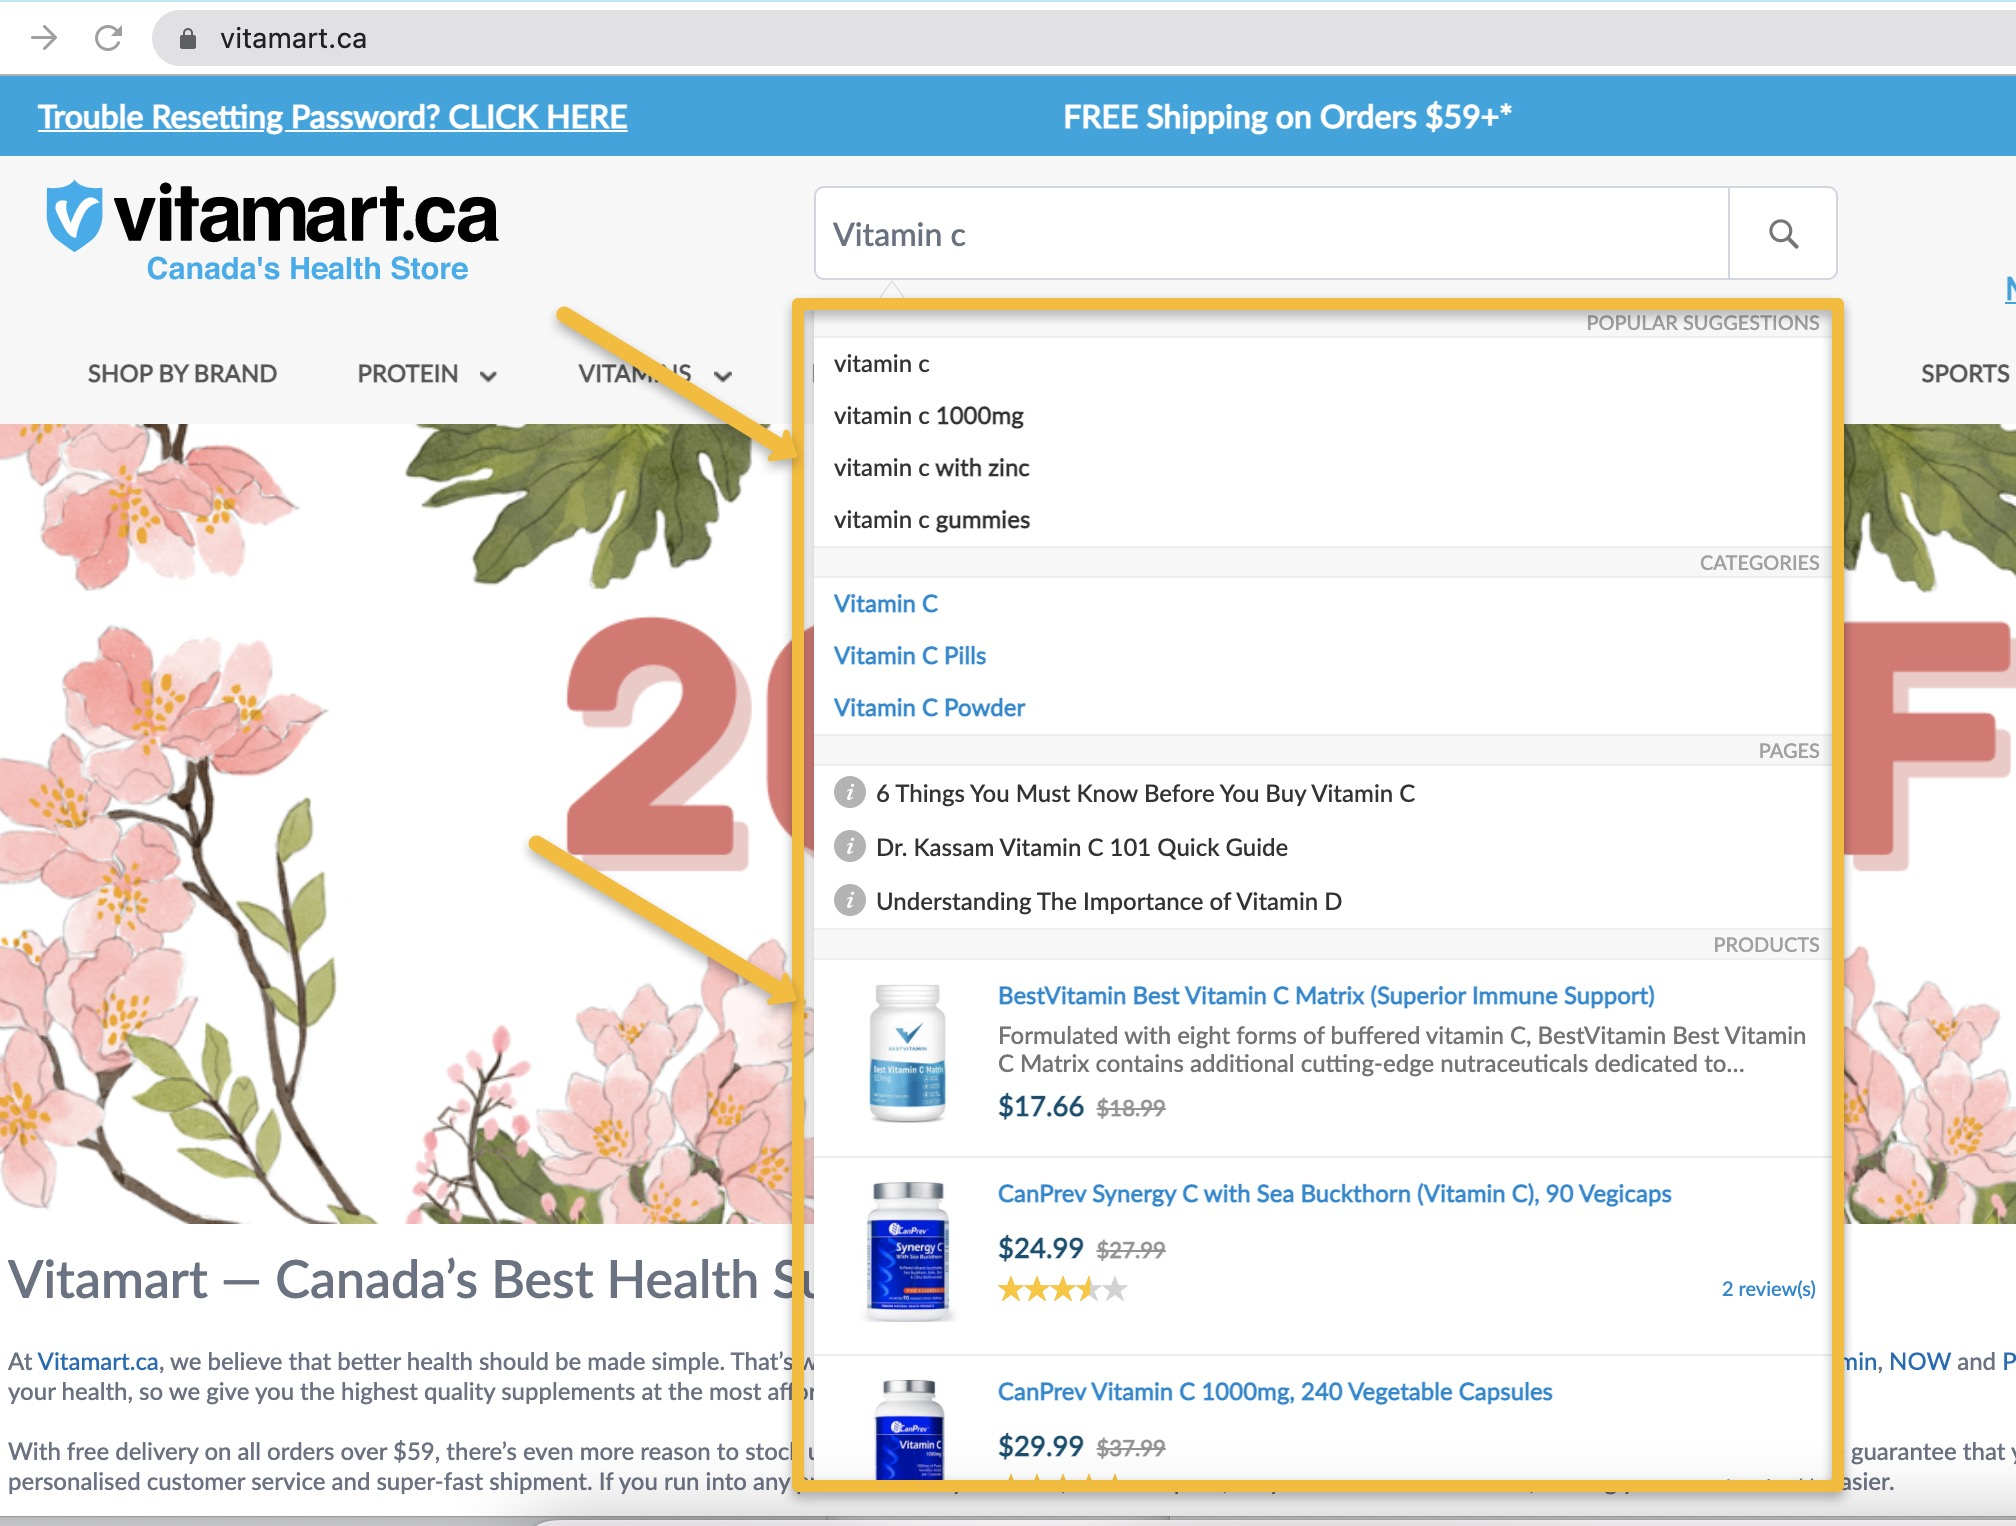 5 Benefits of Vitamart.ca's NEW Enhanced On-Site Search